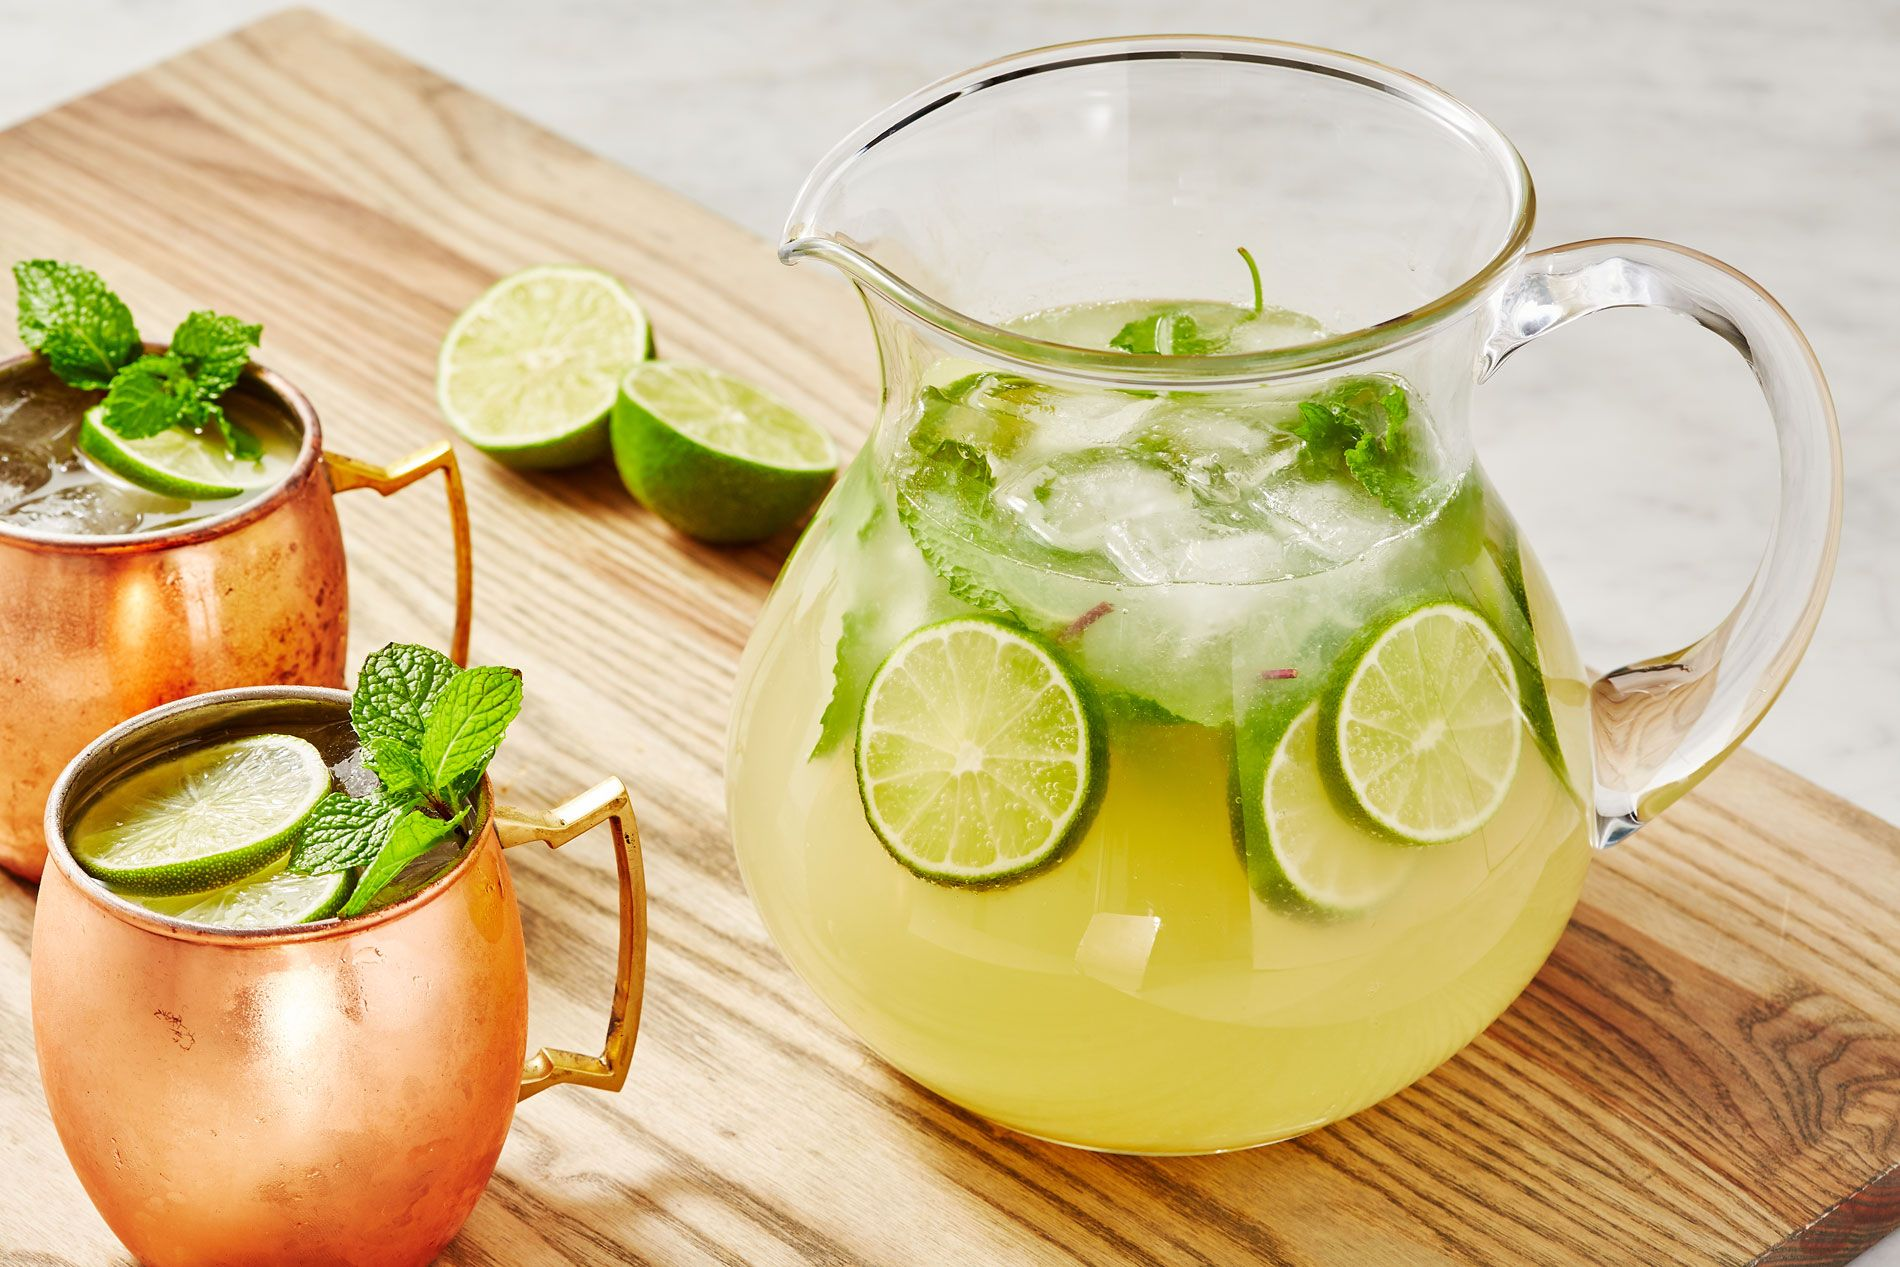 delish-191018-moscow-mule-punch-0144-landscape-pf-1573163319